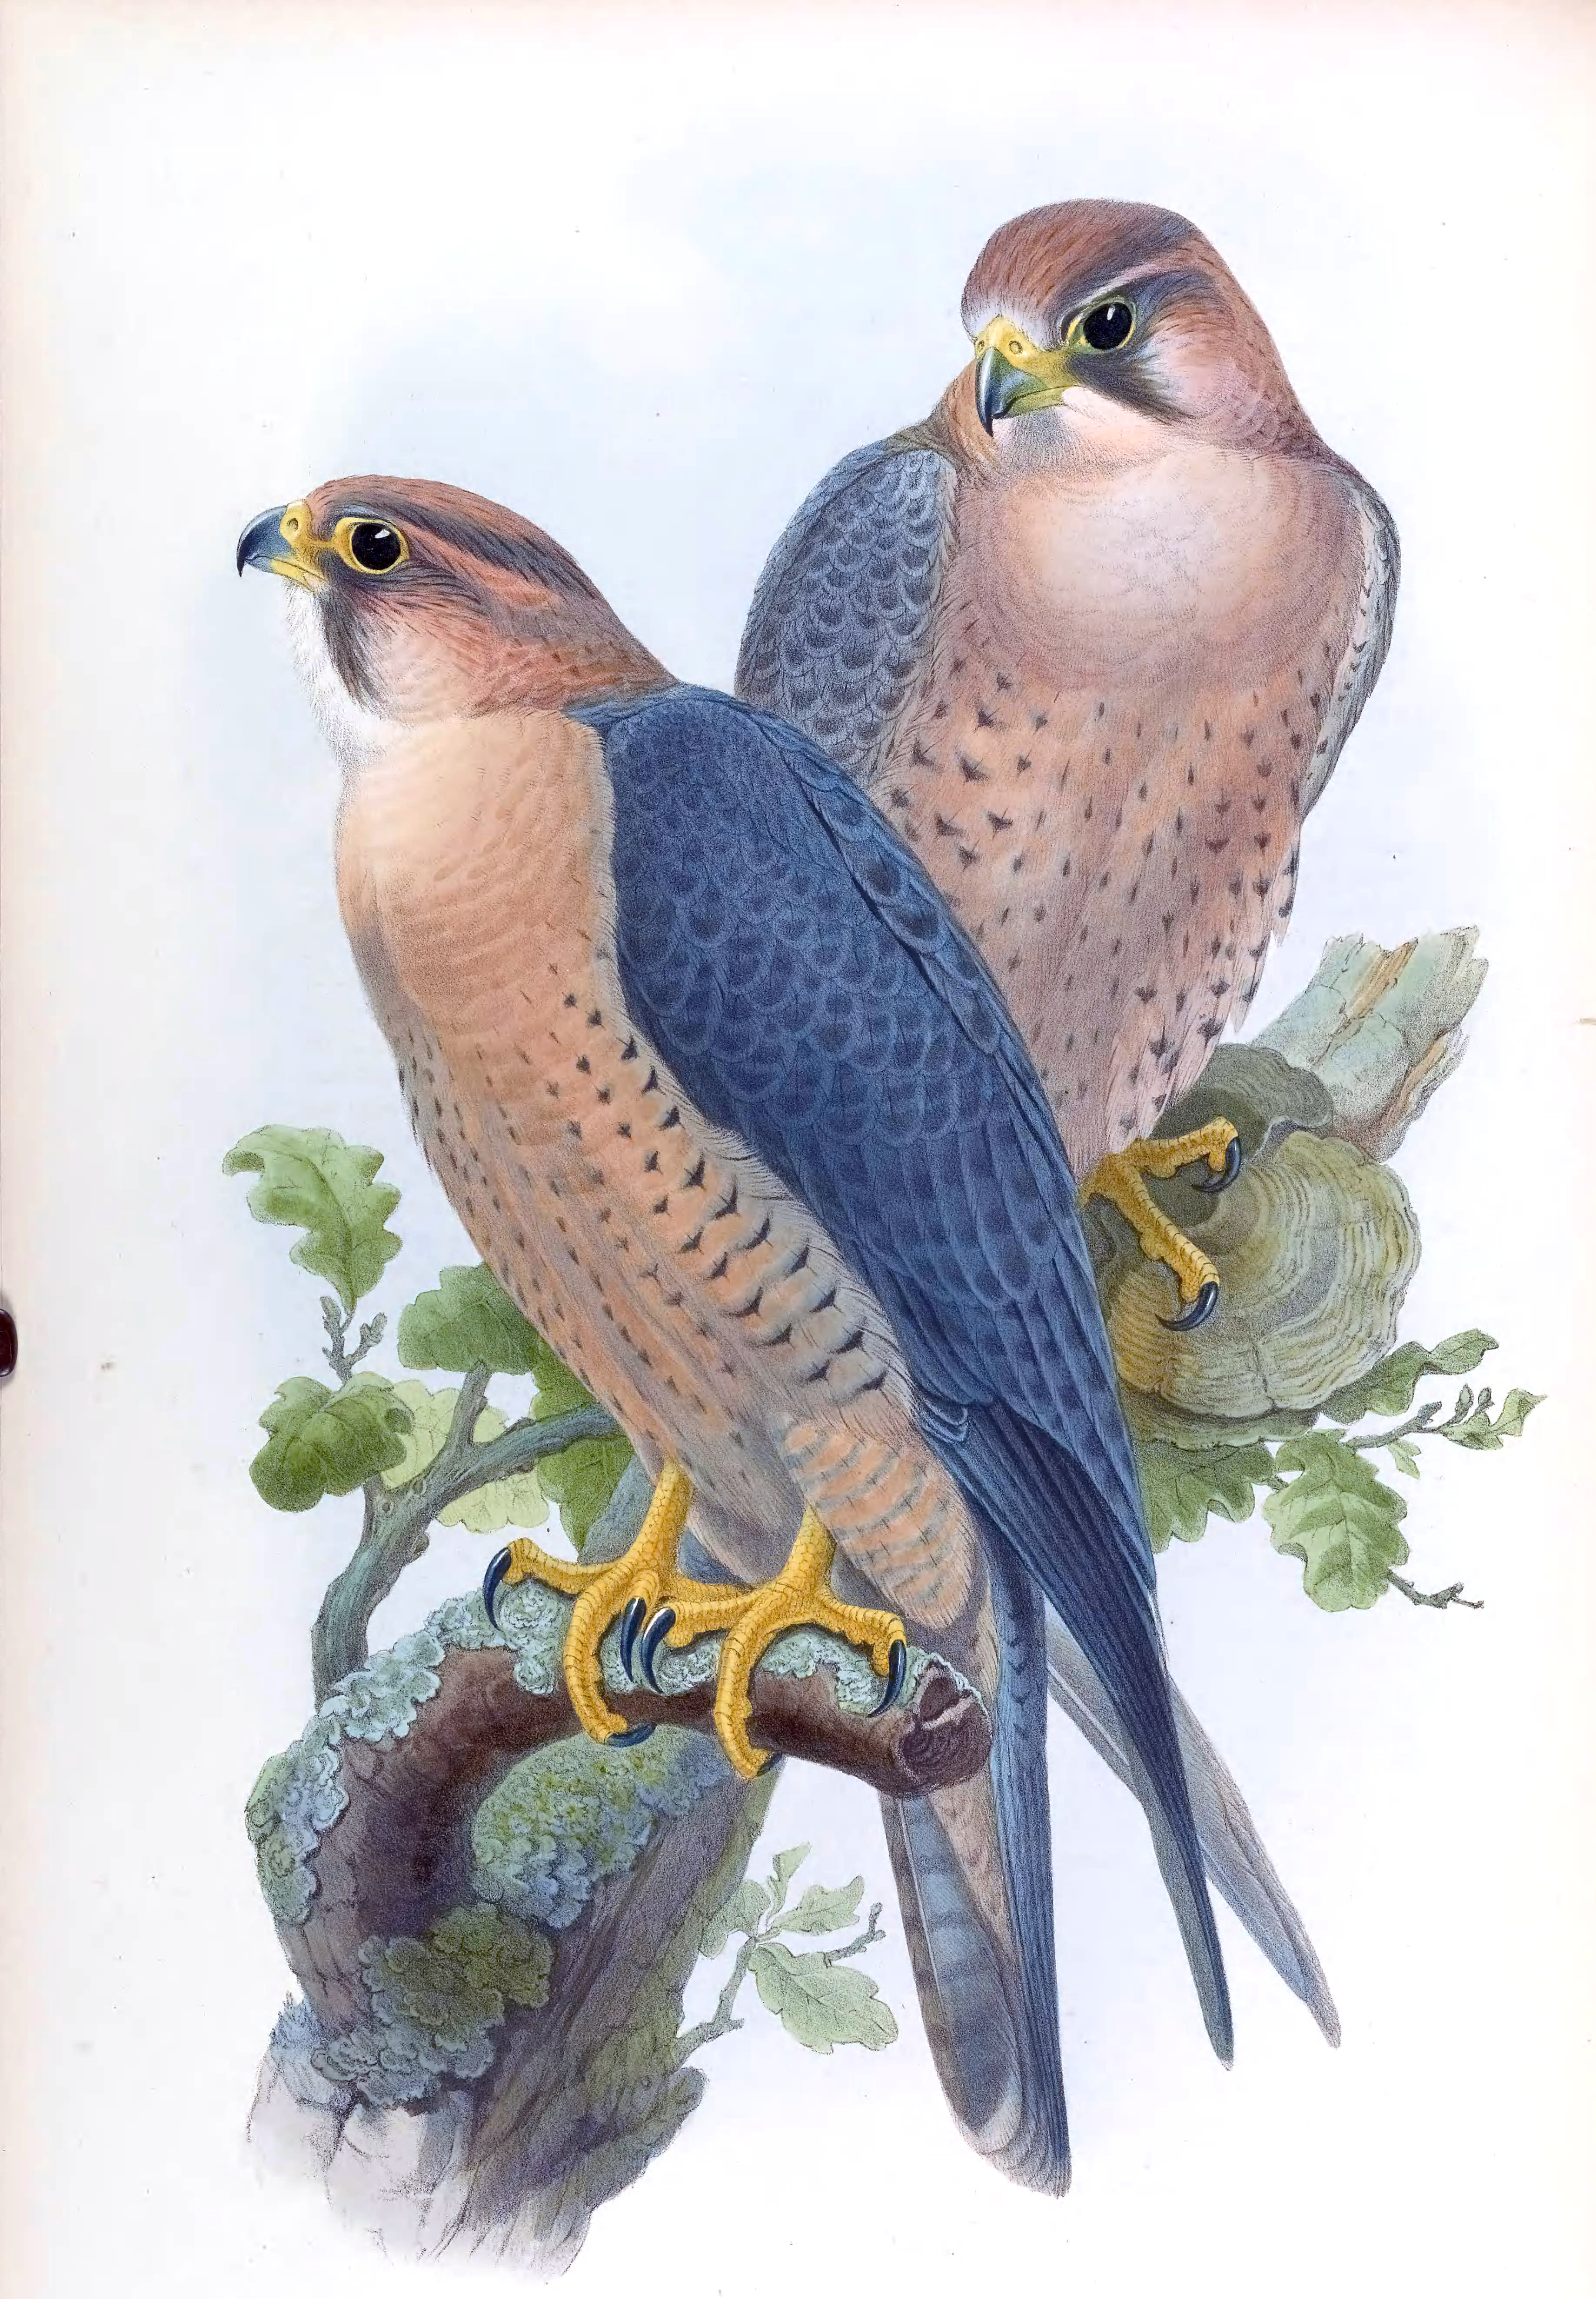 peregrine falcon essay Peregrine falcons do not build nests out of sticks they make scrape nests on ledges, potholes, and crevices on cliffs and buildings this nest box is filled with pea gravel to provide a substrate that cushions and drains the eggs.